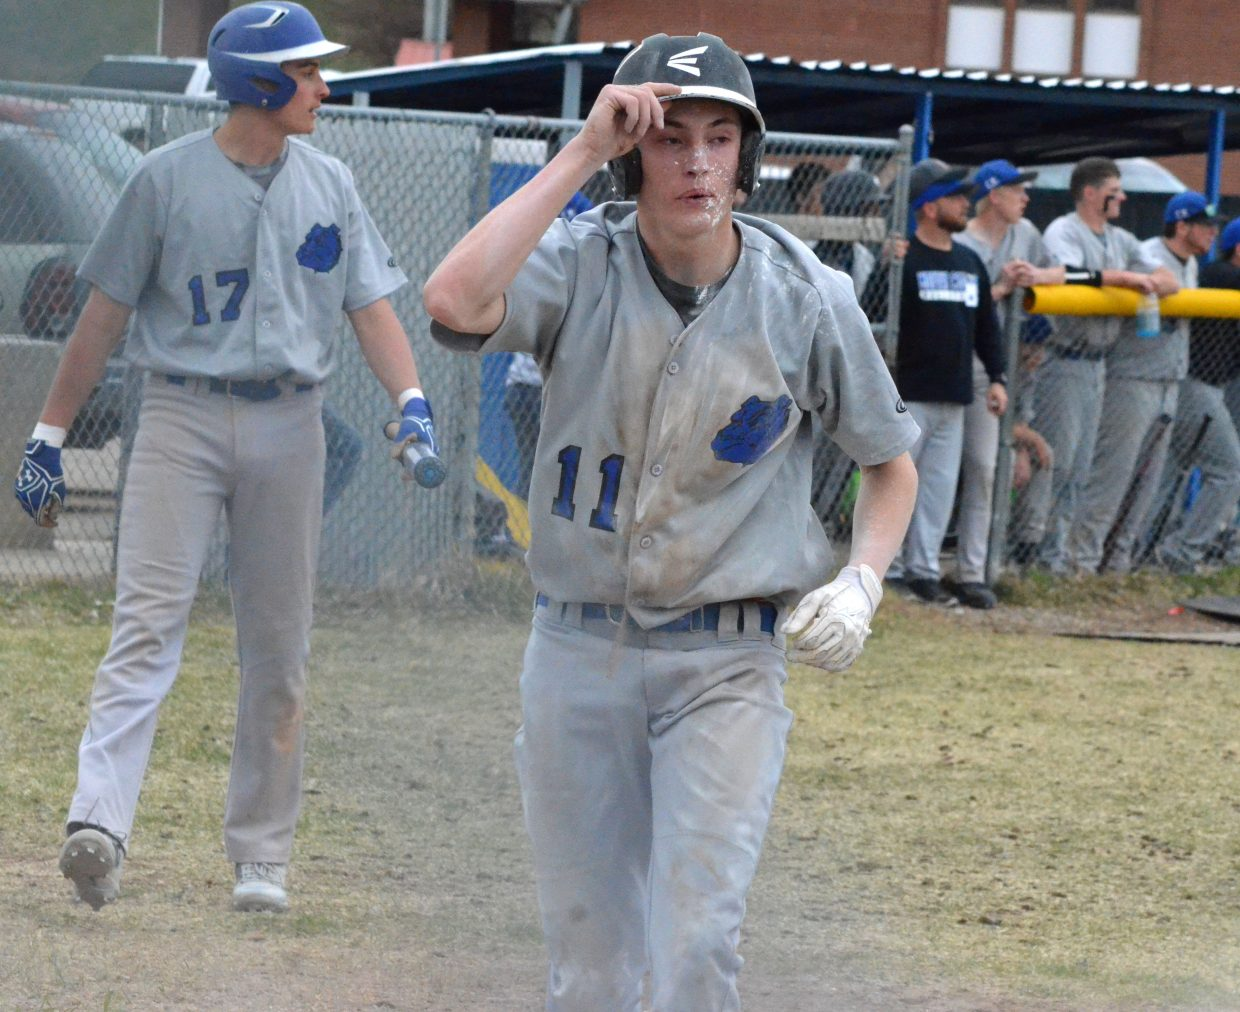 Moffat County High School's Connor Murphy is covered in dirt and baseline chalk after sliding into home.